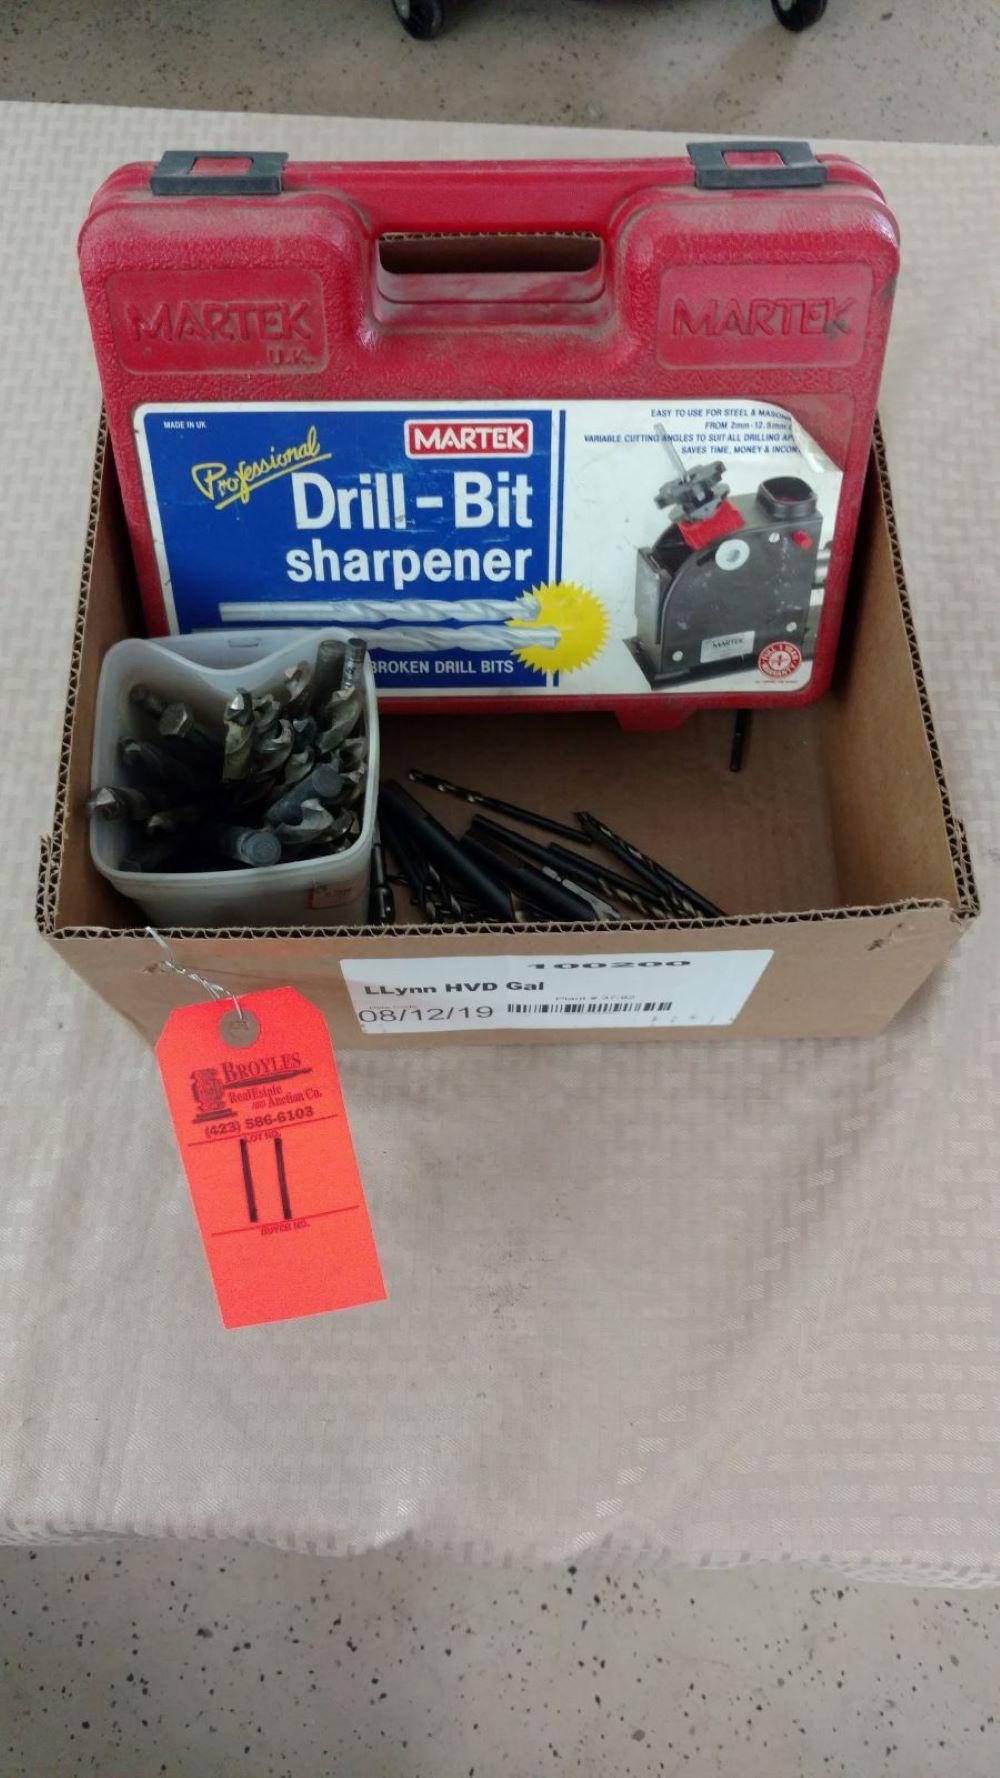 Drill bit sharpener and bits